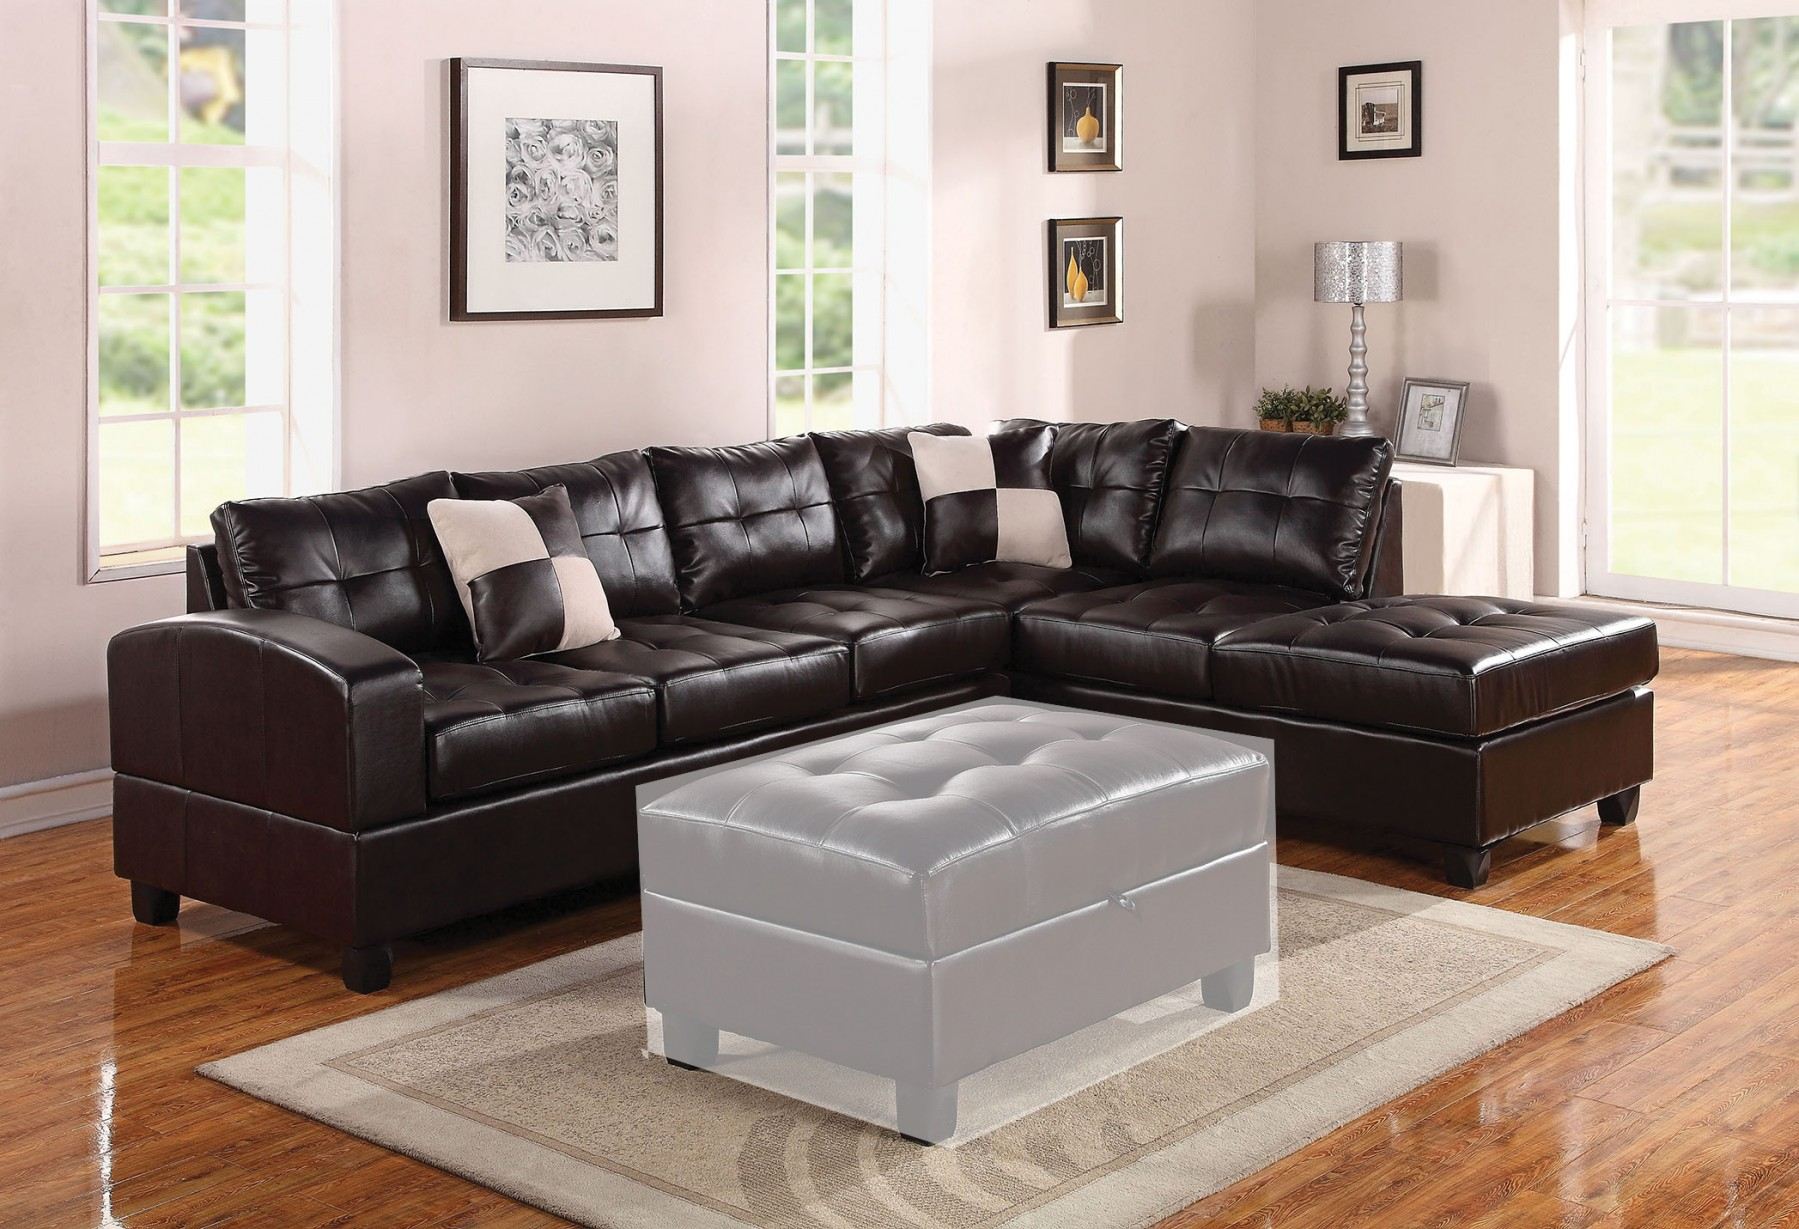 Modern Kiva Espresso 2Pc Sectional Set Bonded Leather Living Room Furniture  Home